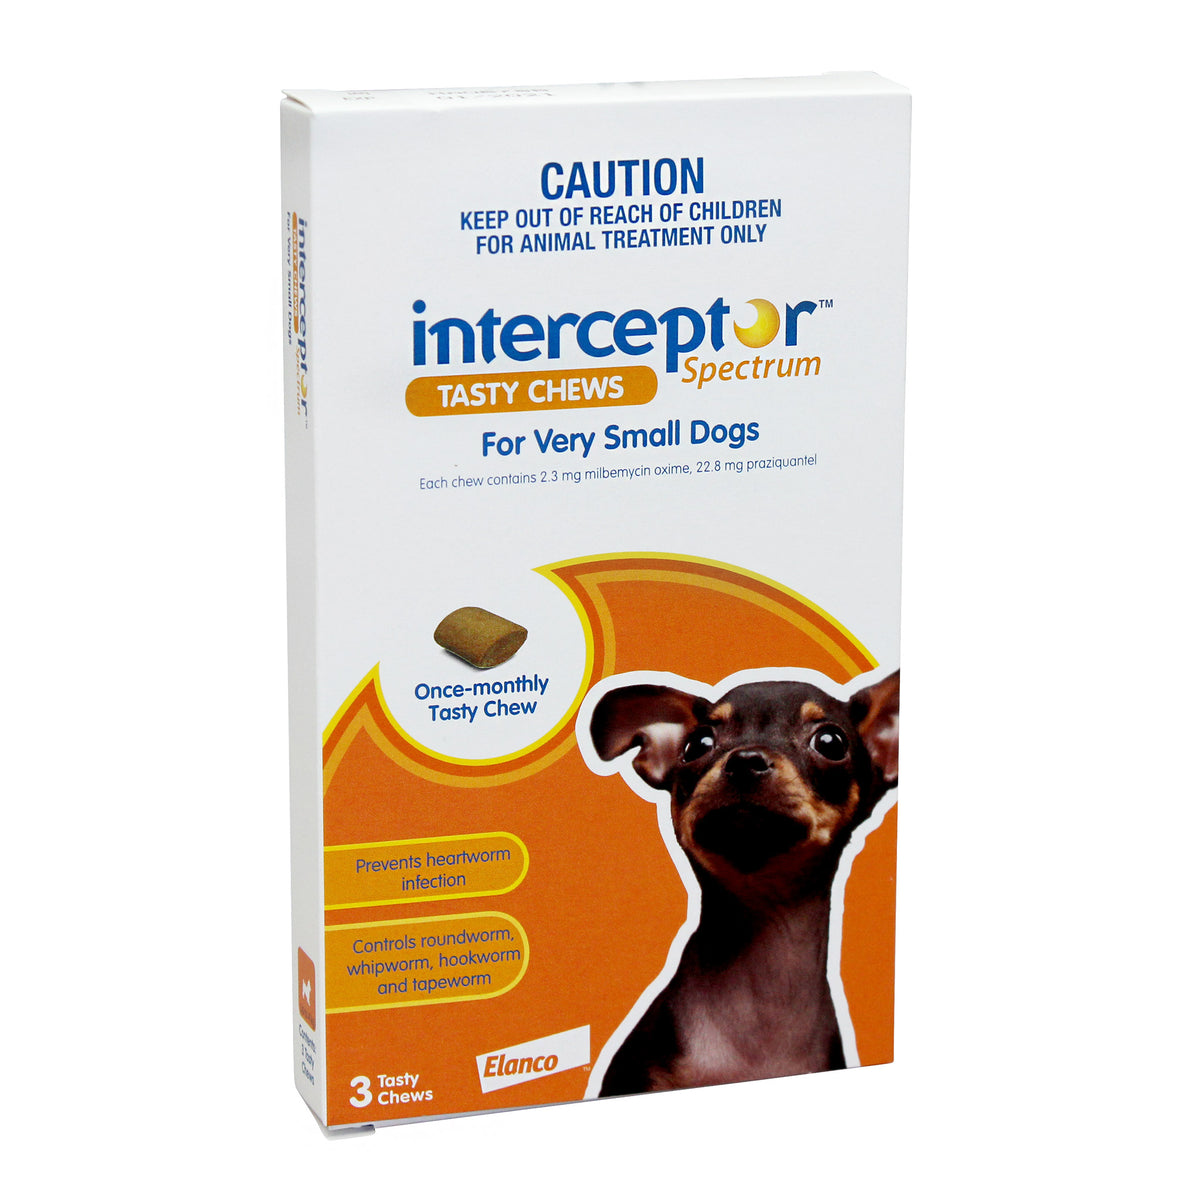 INTERCEPTOR  Spectrum Chews Orange. VSmall Dogs Up to 4kg